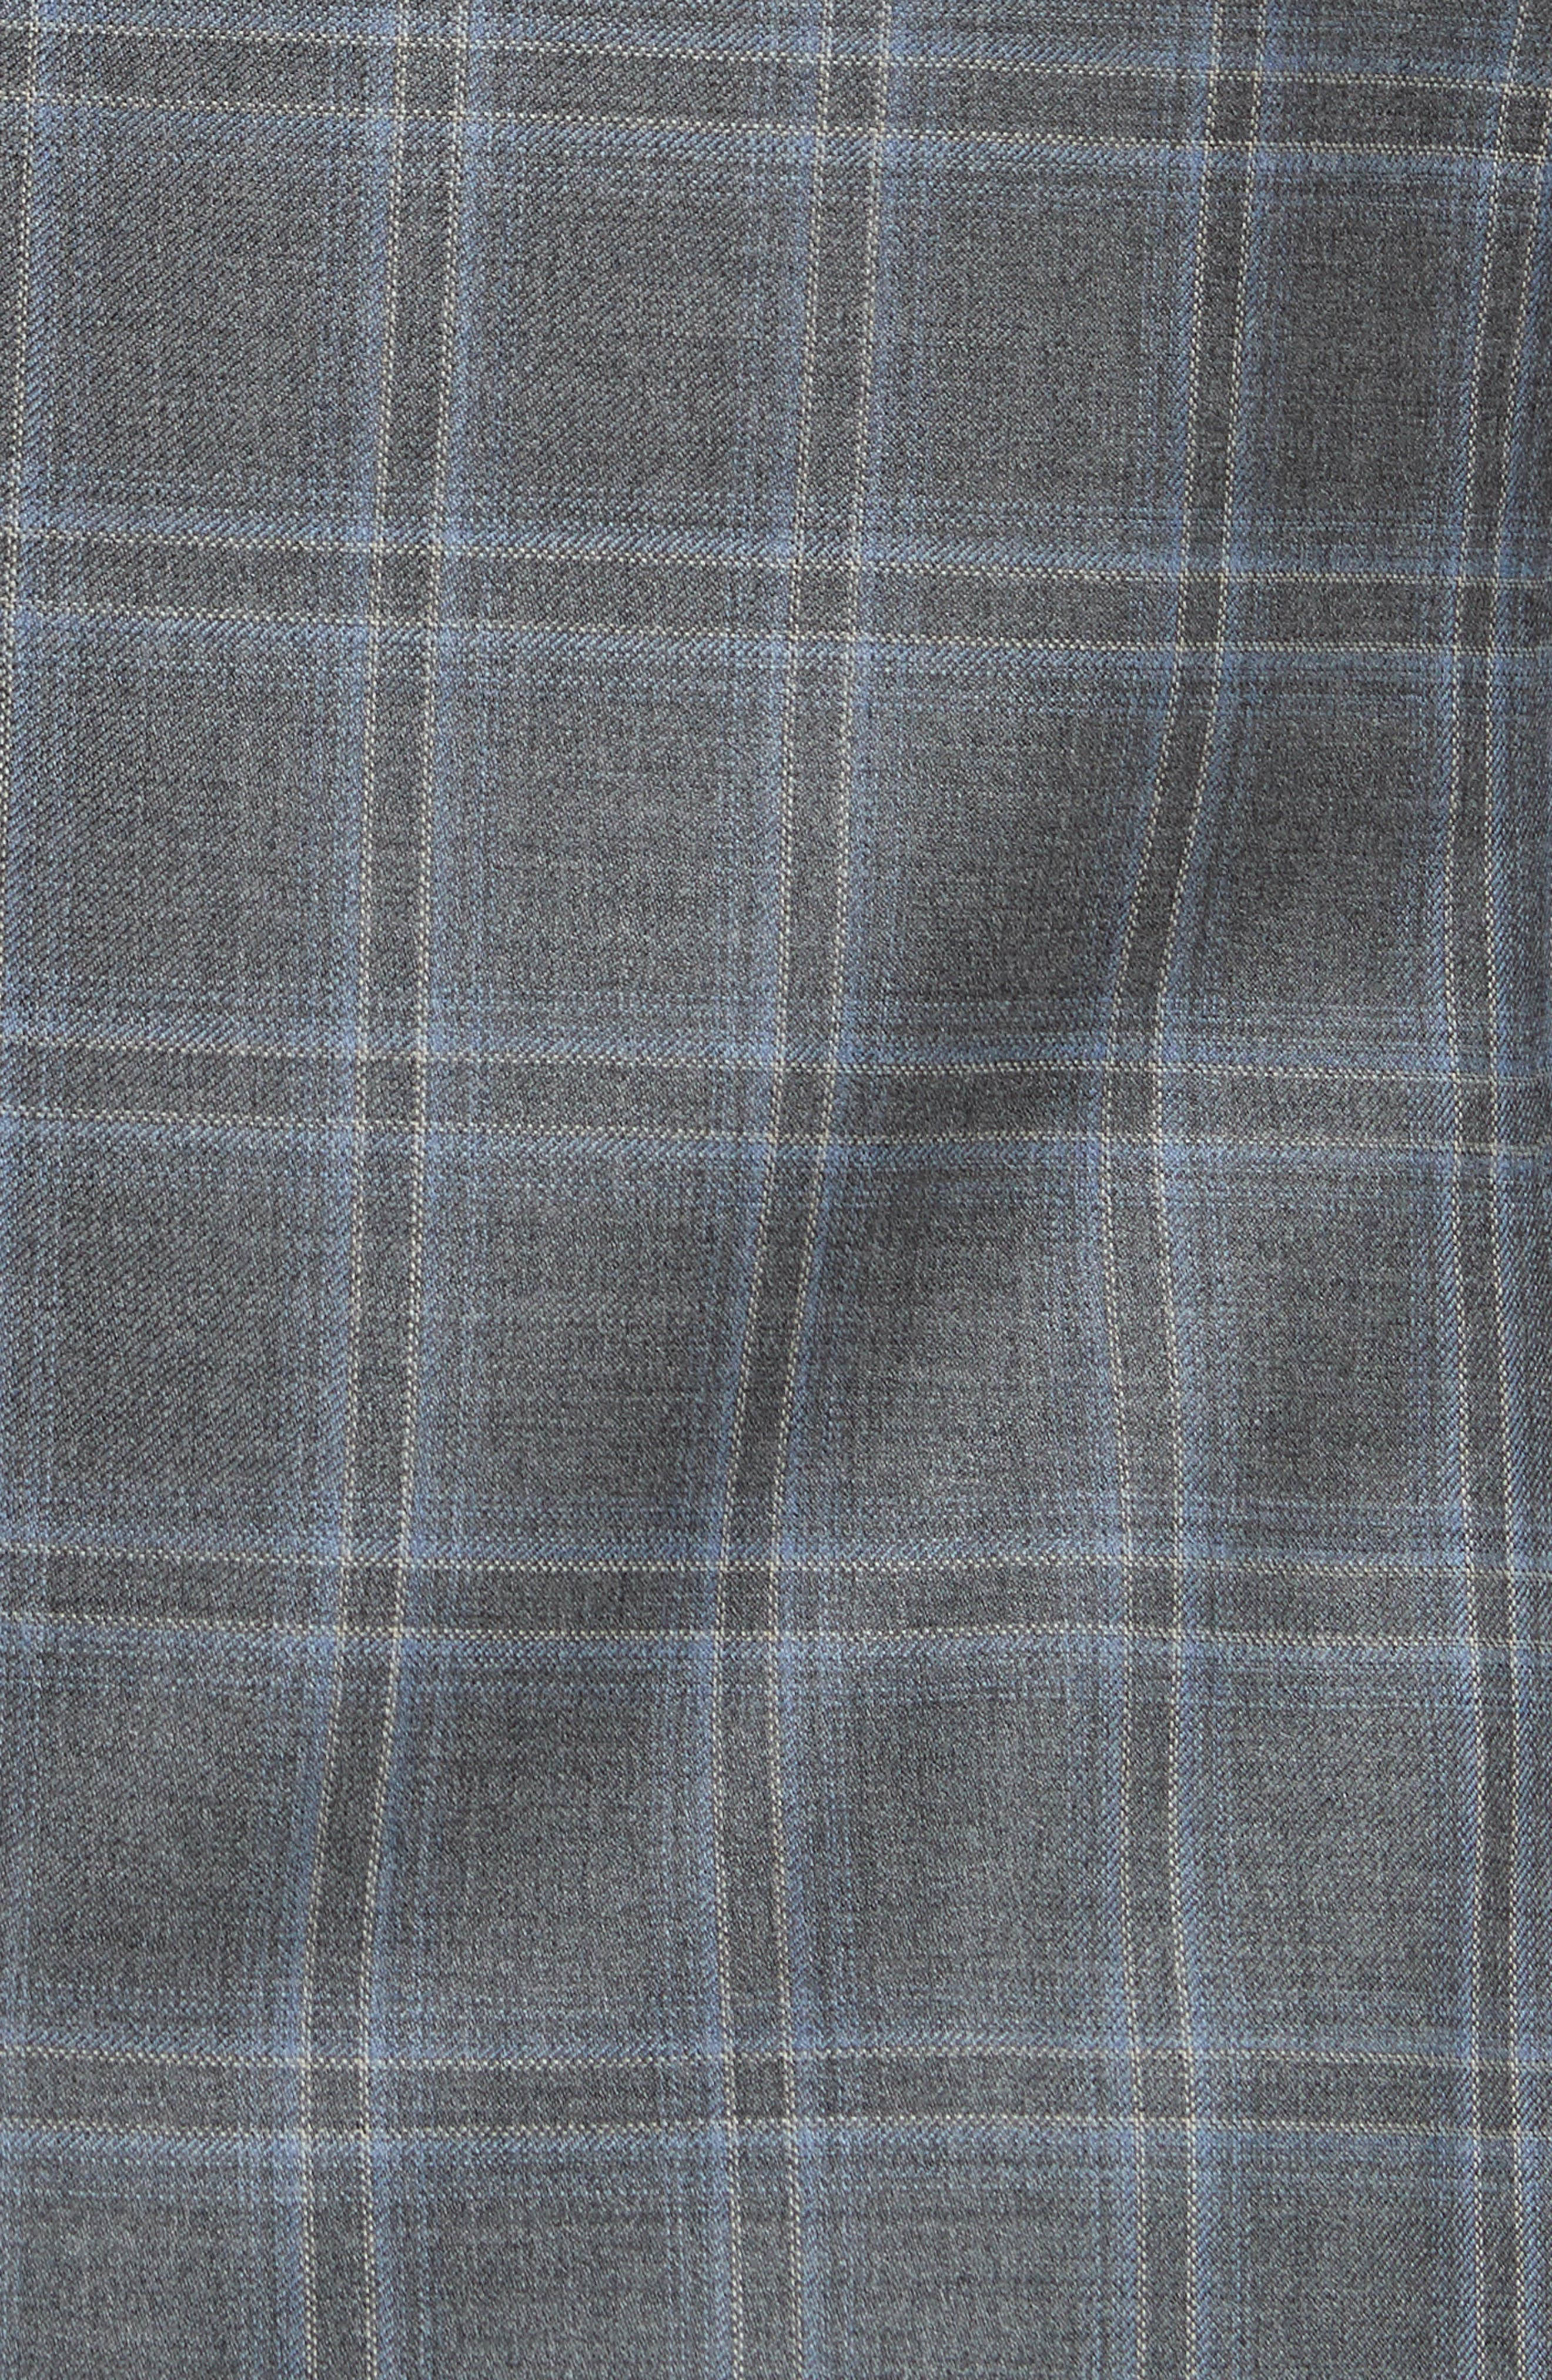 Classic Fit Plaid Wool Sport Coat,                             Alternate thumbnail 5, color,                             Grey